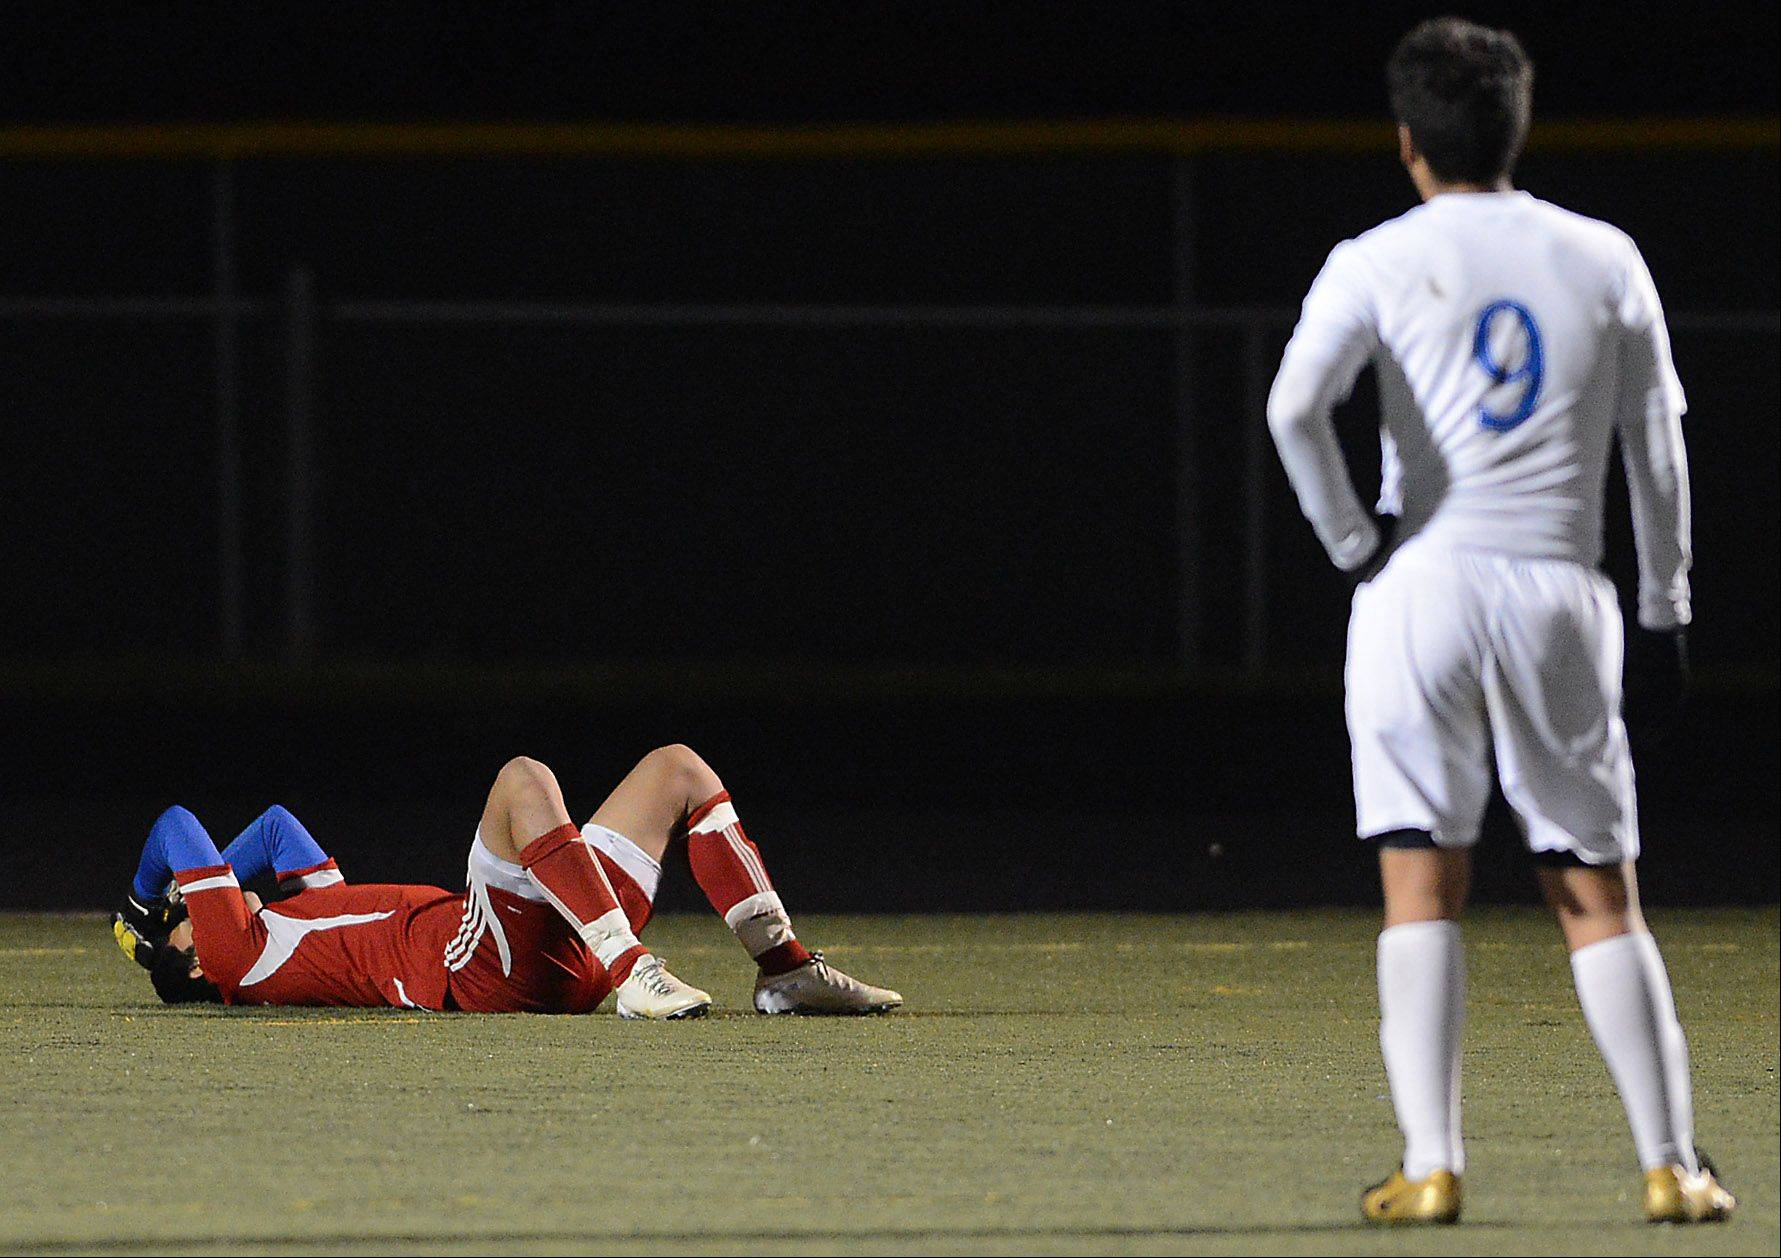 Larkin goalkeeper Aldair Dominguez lays on the ground after surrendering an insurance goal to put Lake Park up 2-0 with about 5 minutes to play during Tuesday's supersectional in Streamwood.